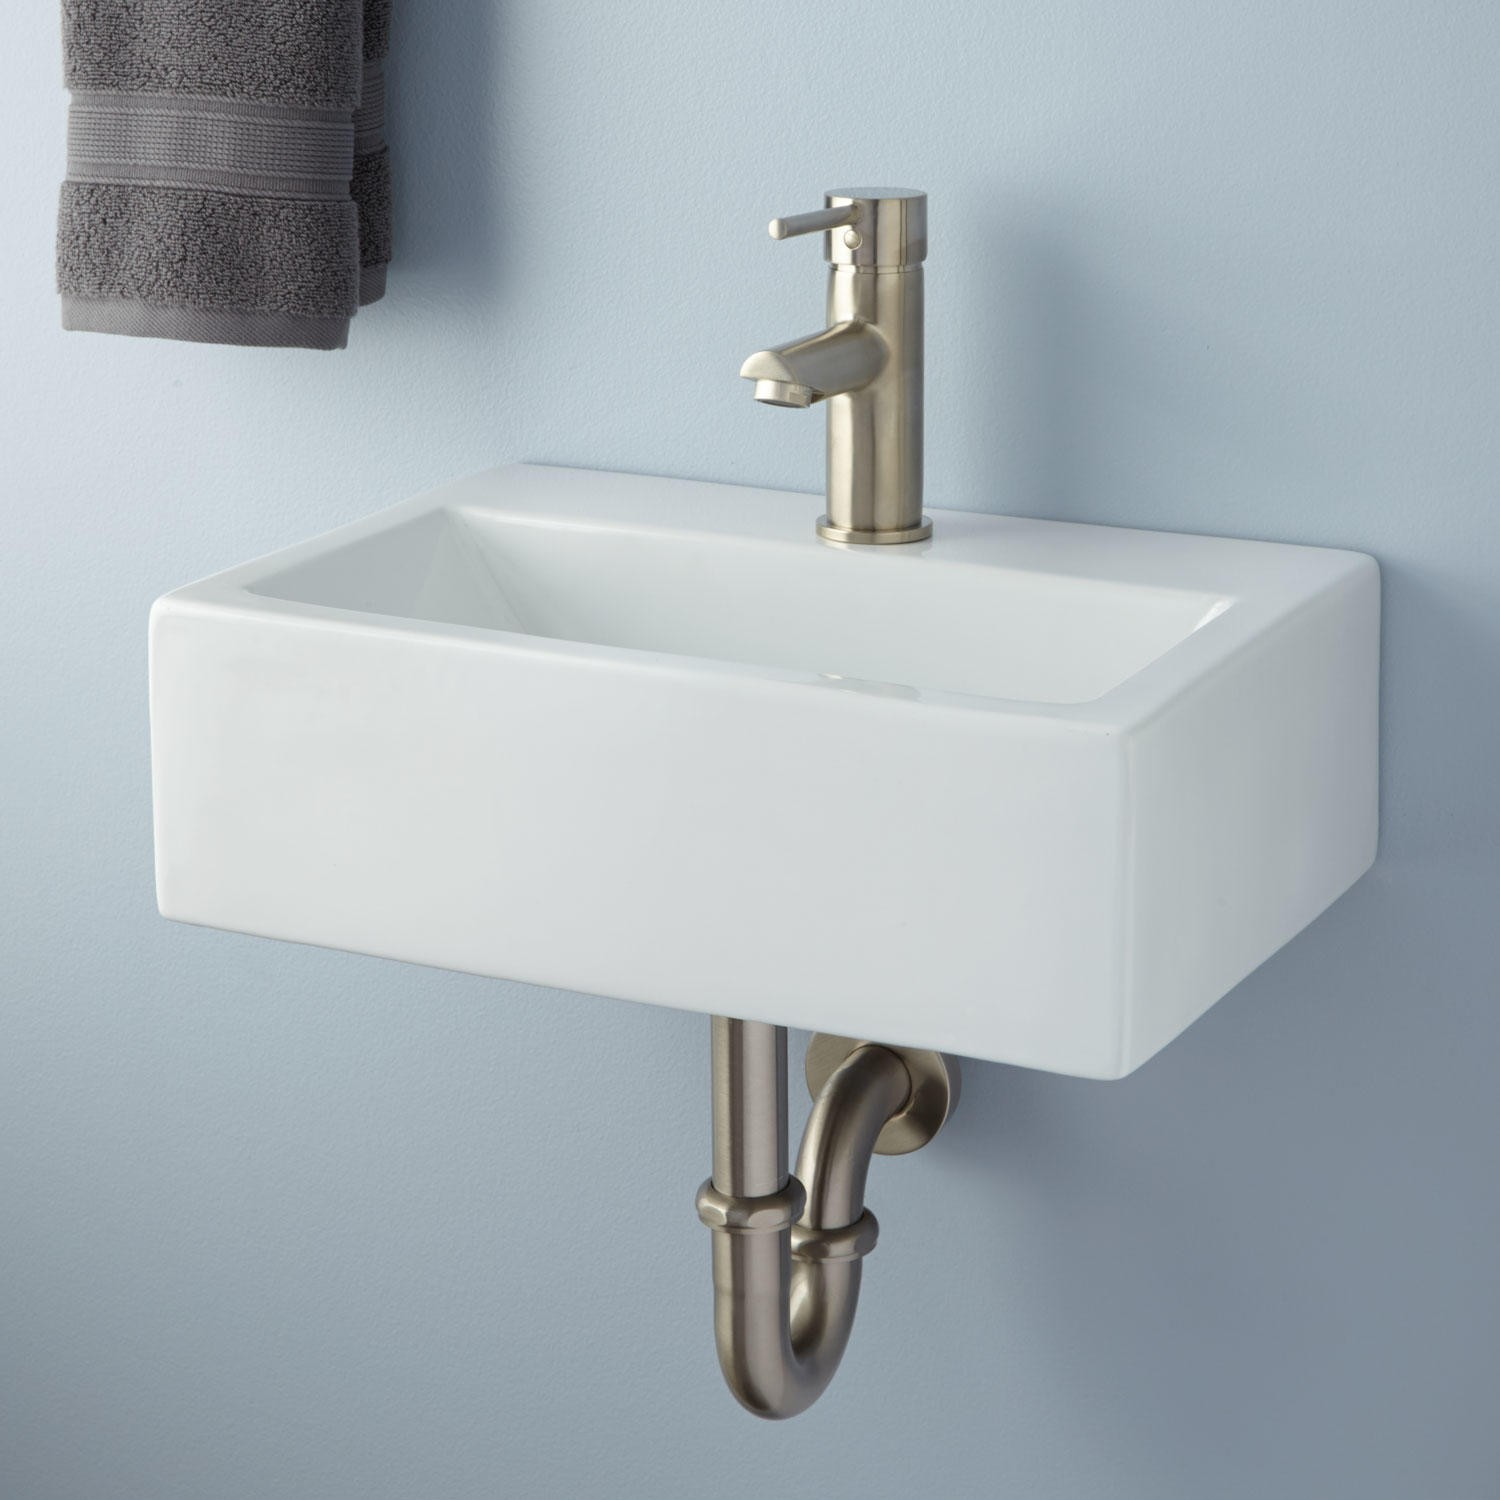 Amazing Design Of The Wall Mounted Sink With White Marble Color Materials  Added With Silver Faucets